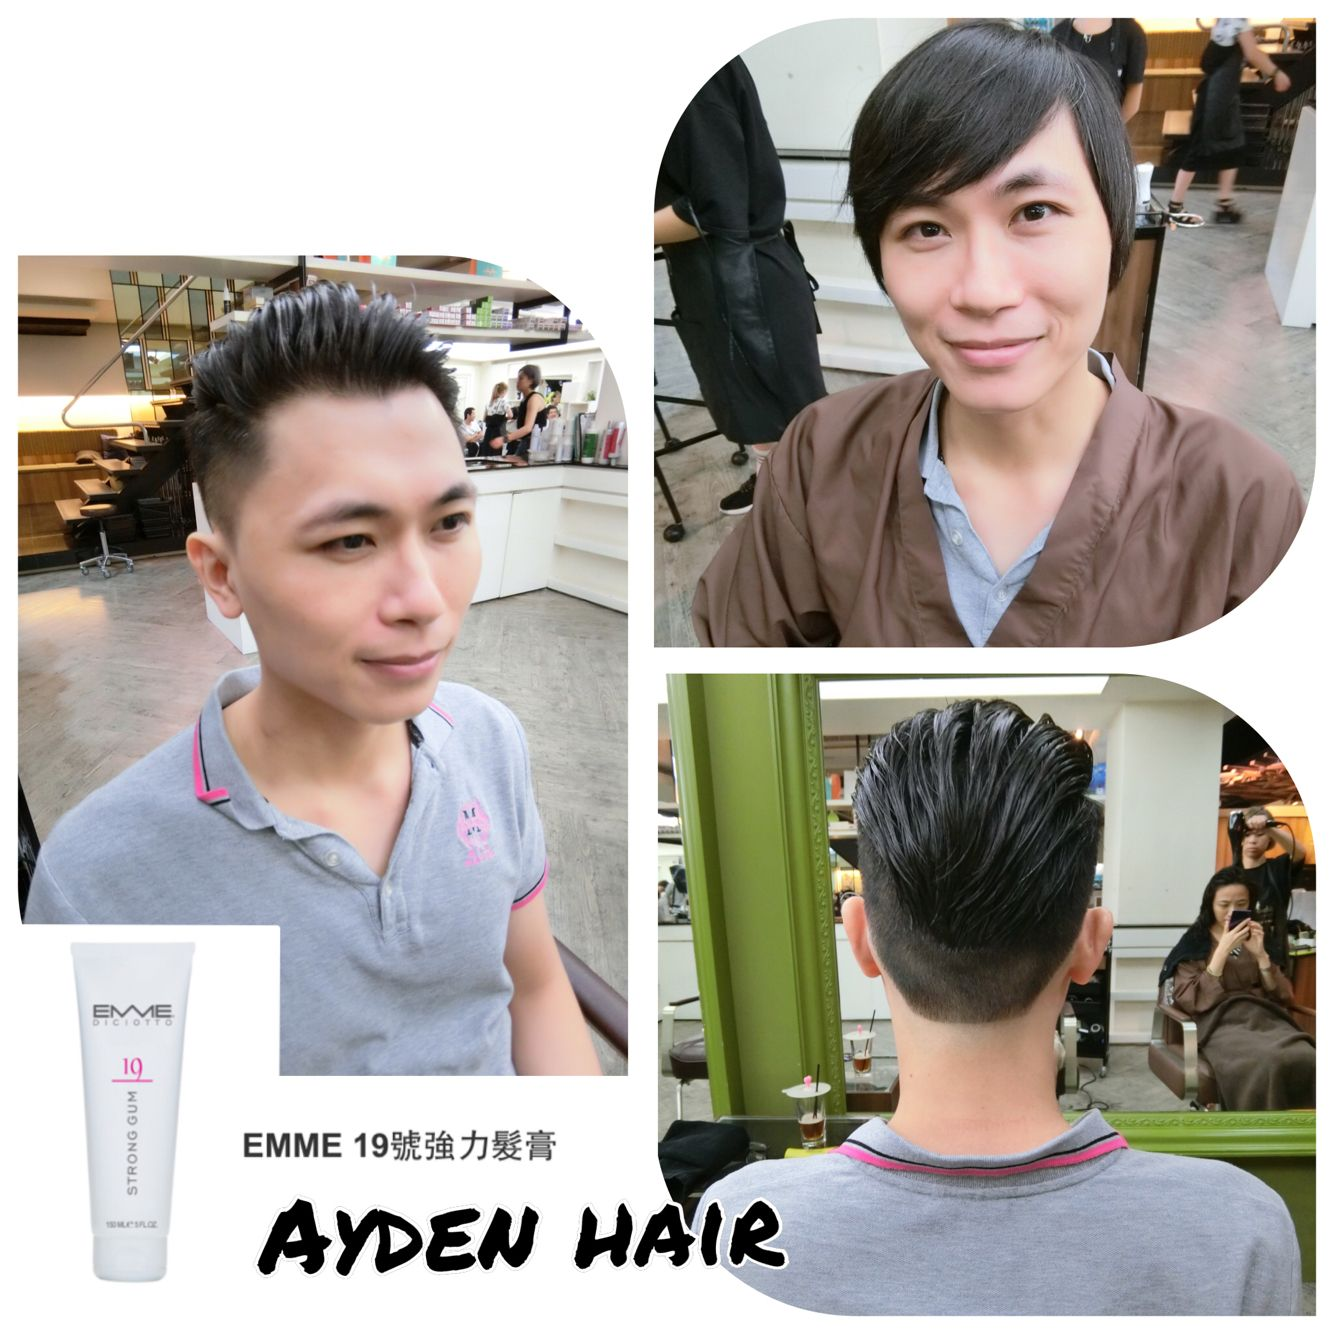 Pin by ayden wang on boy hair by me pinterest boy hair